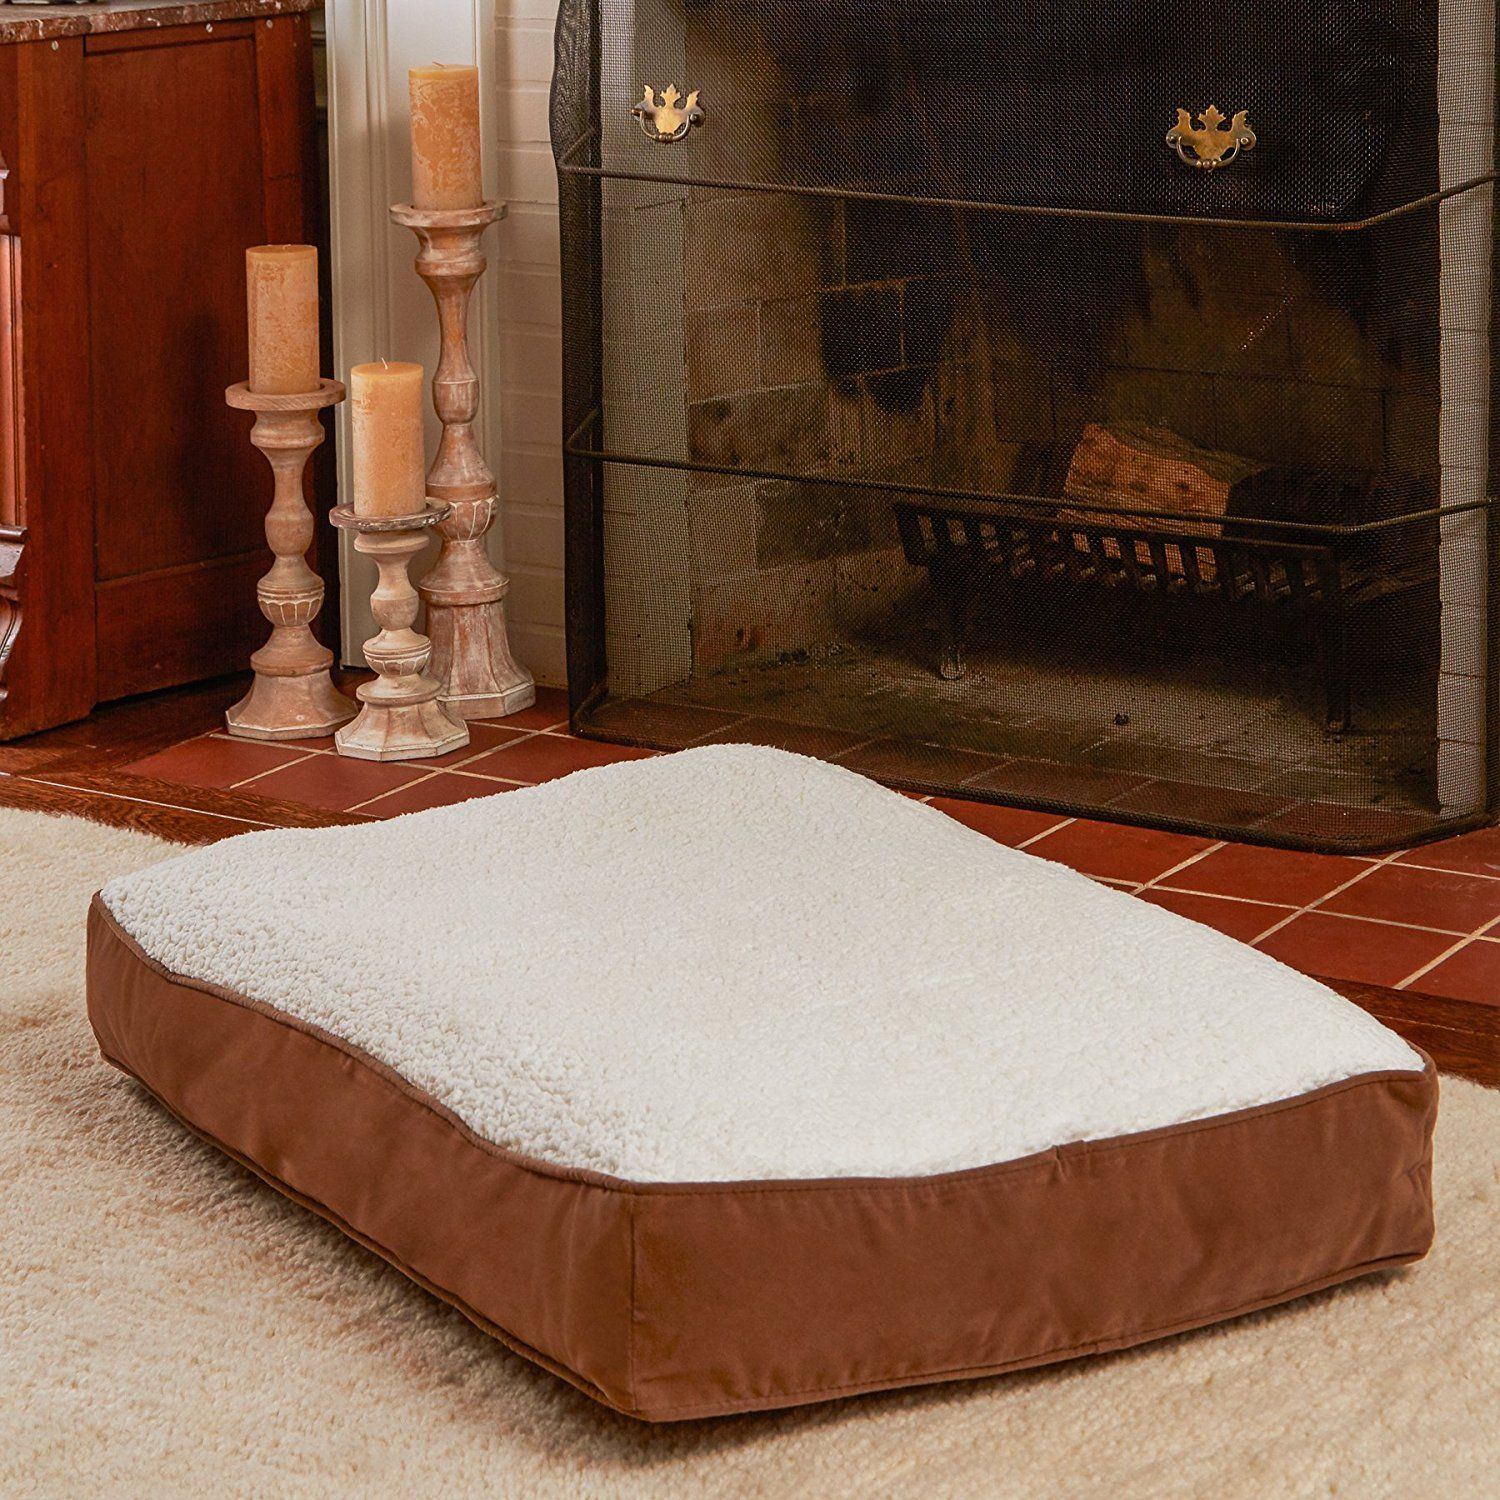 happy hounds buster dog bed to view further for this item visit